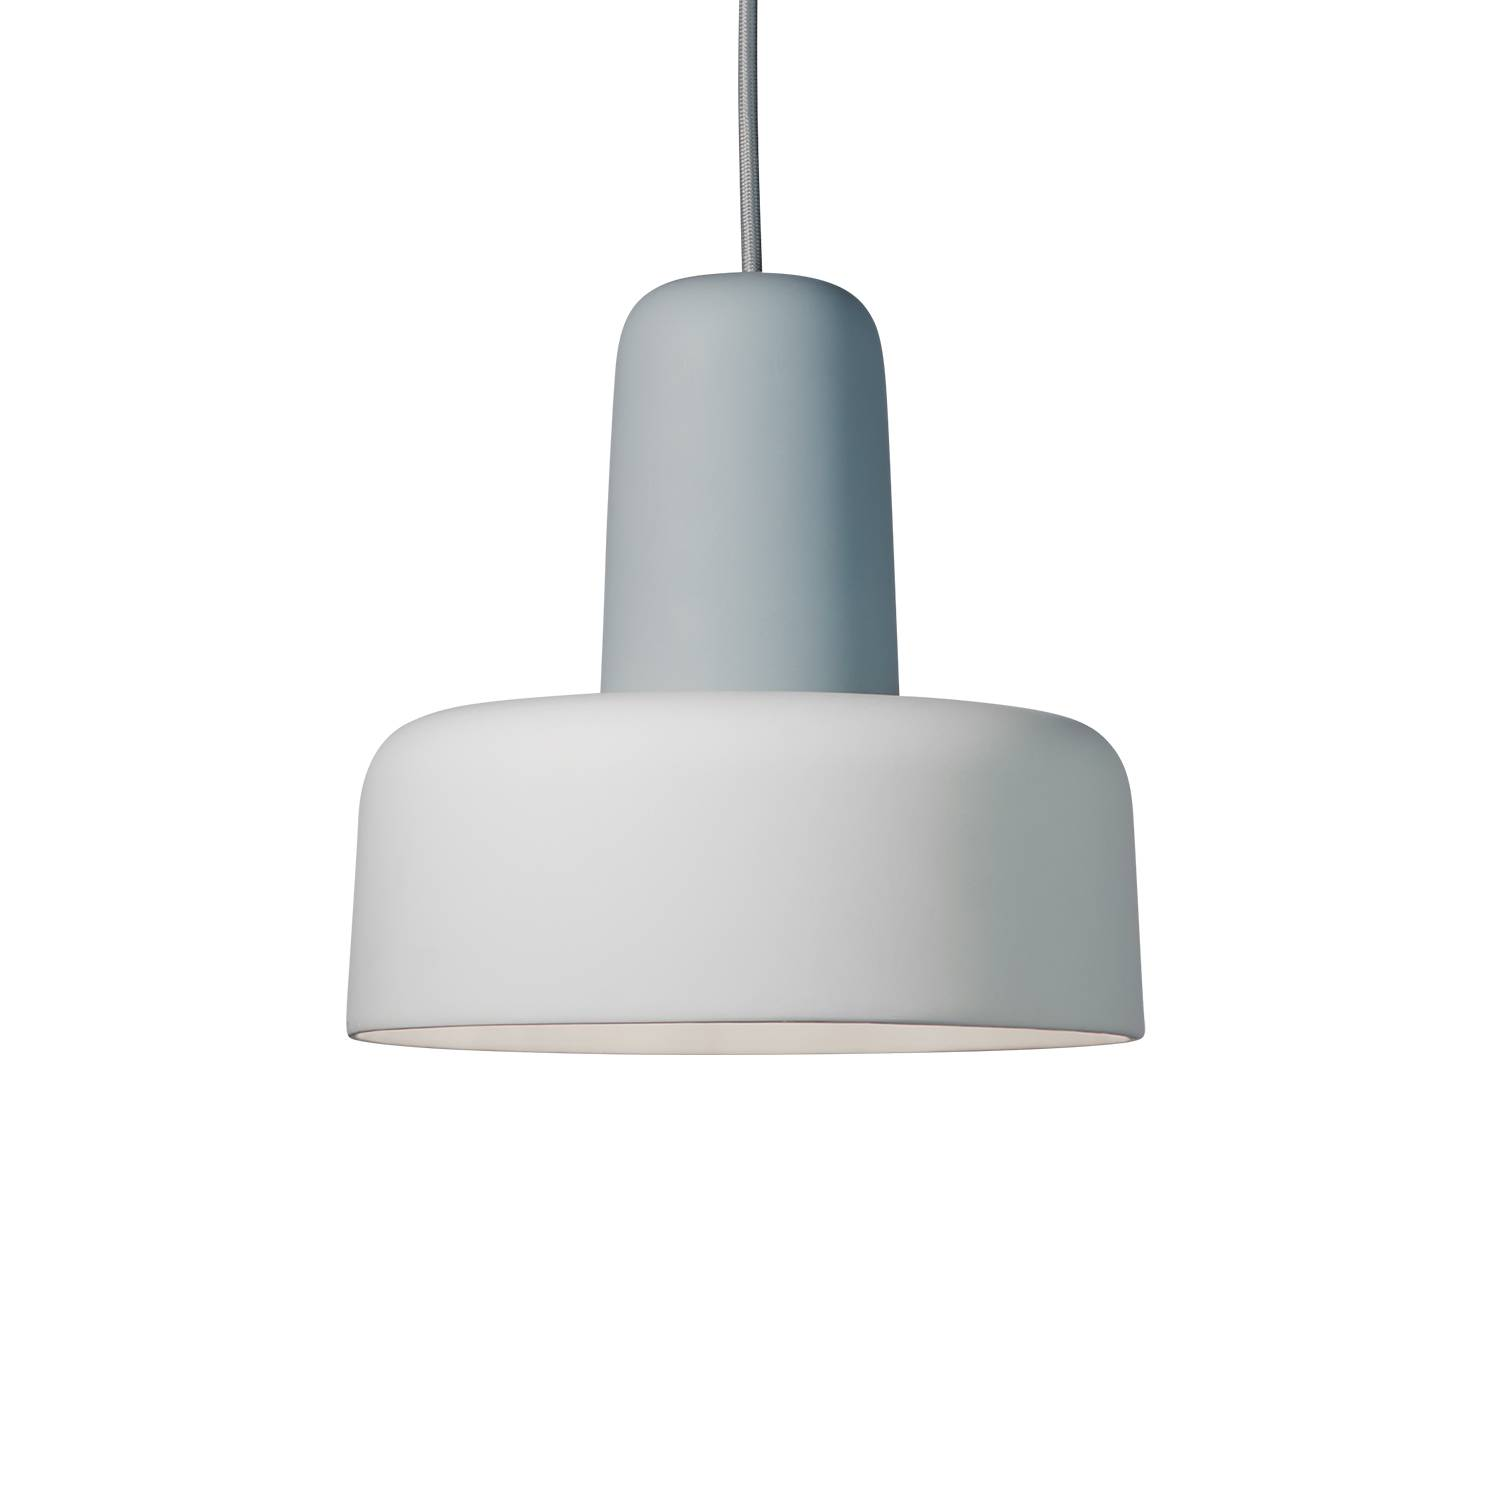 Northern Lighting Meld Kattovalaisin, Dusty Blue/Offwhite